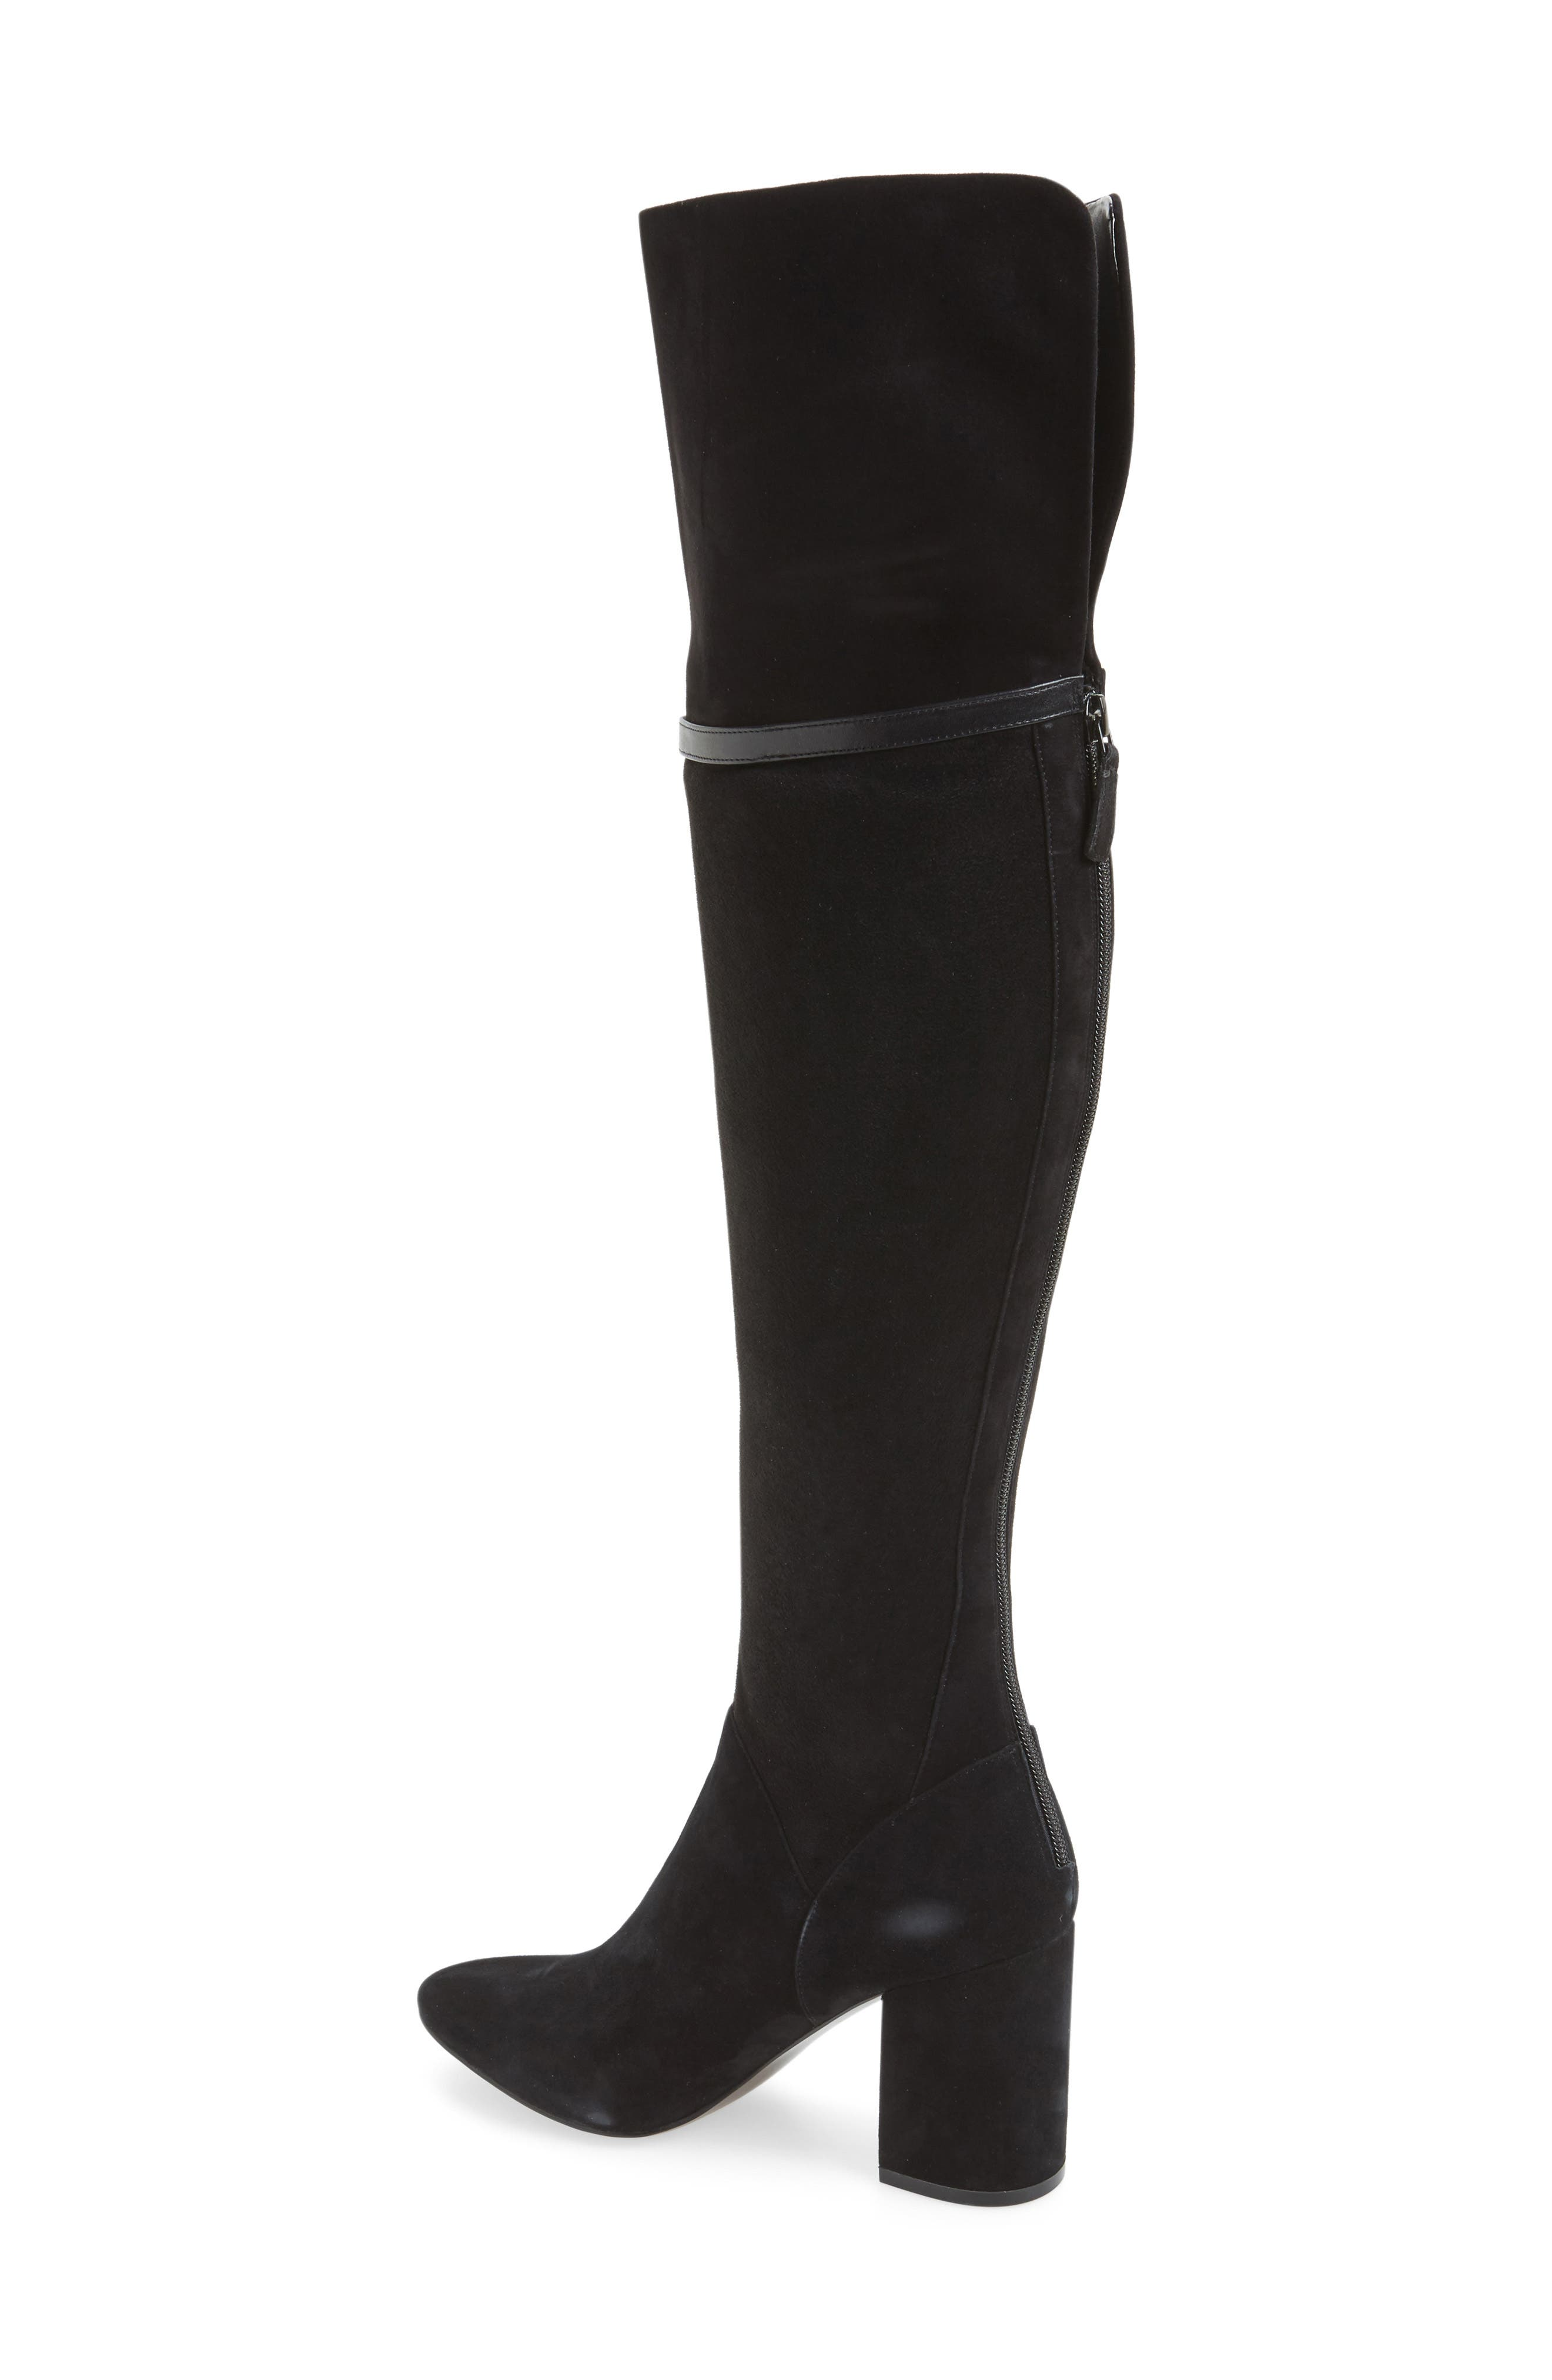 Darcia Over the Knee Boot,                             Alternate thumbnail 2, color,                             001